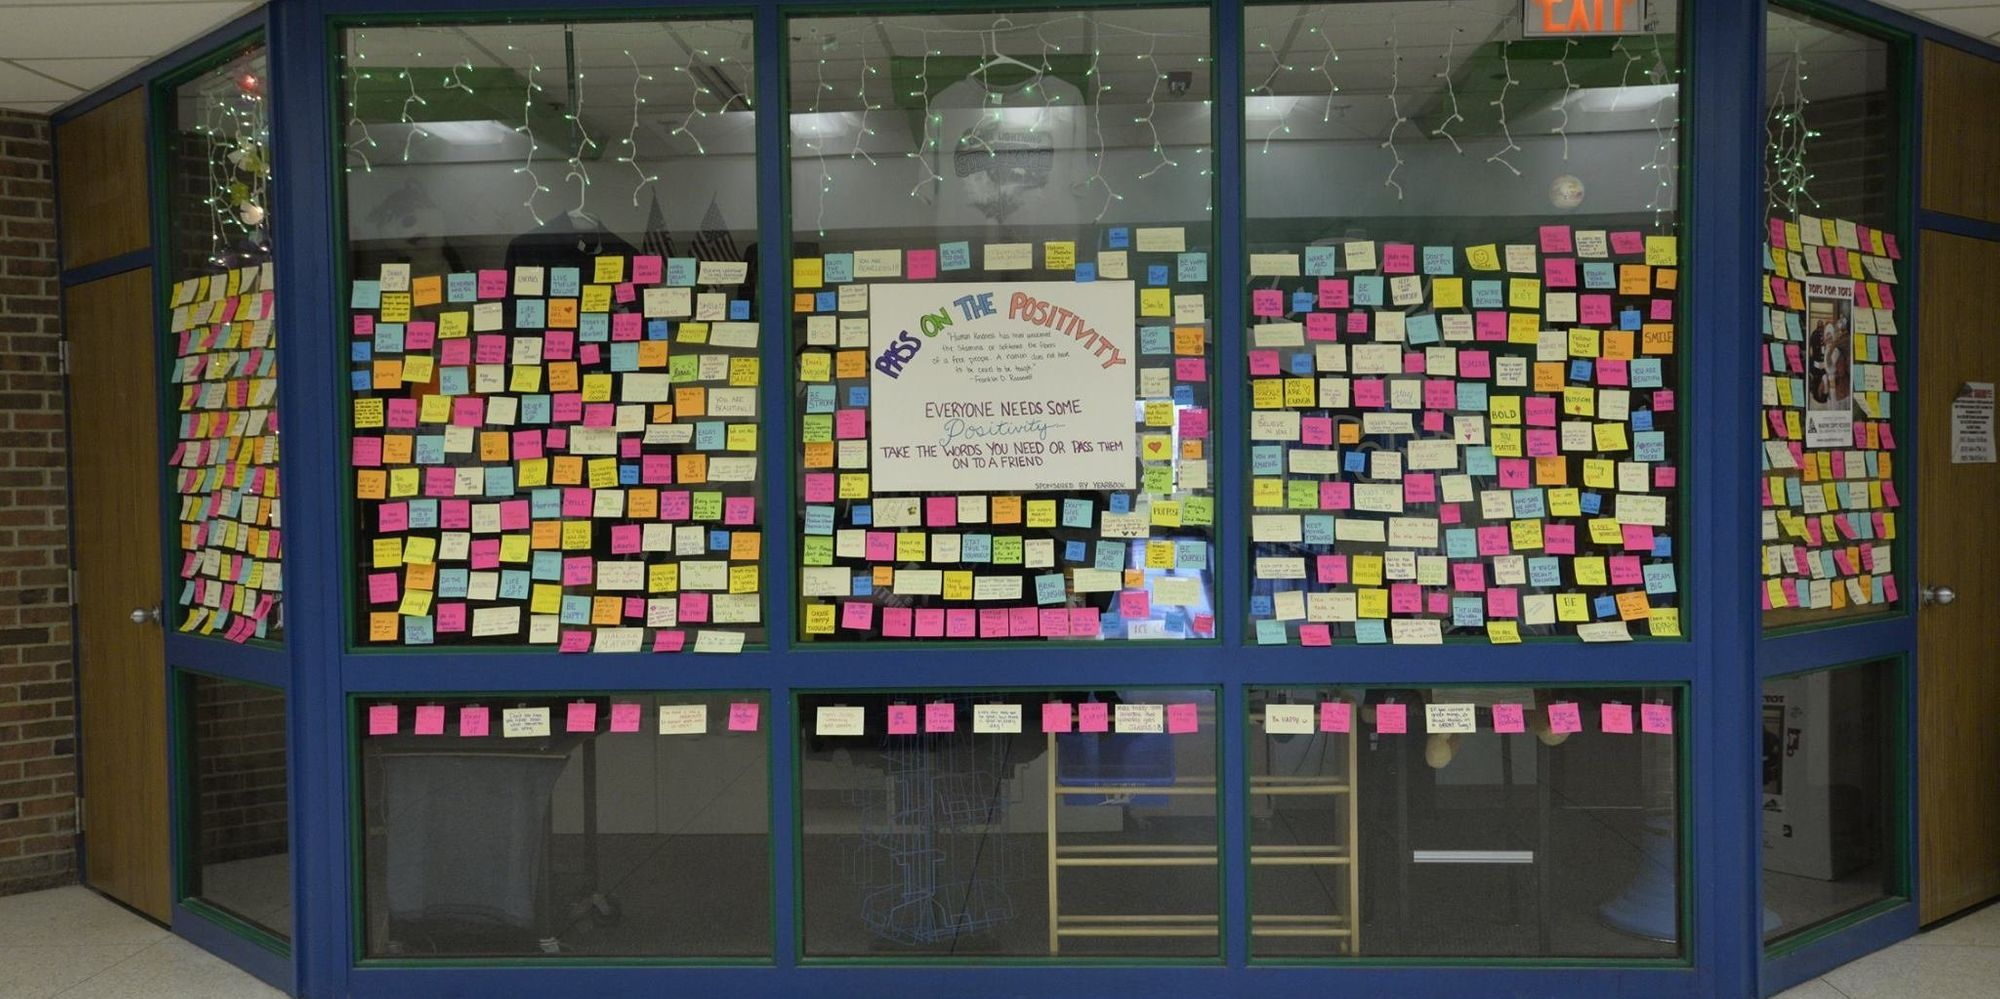 Michigan Students Create 'Pass On The Positivity' Project To Spread Love